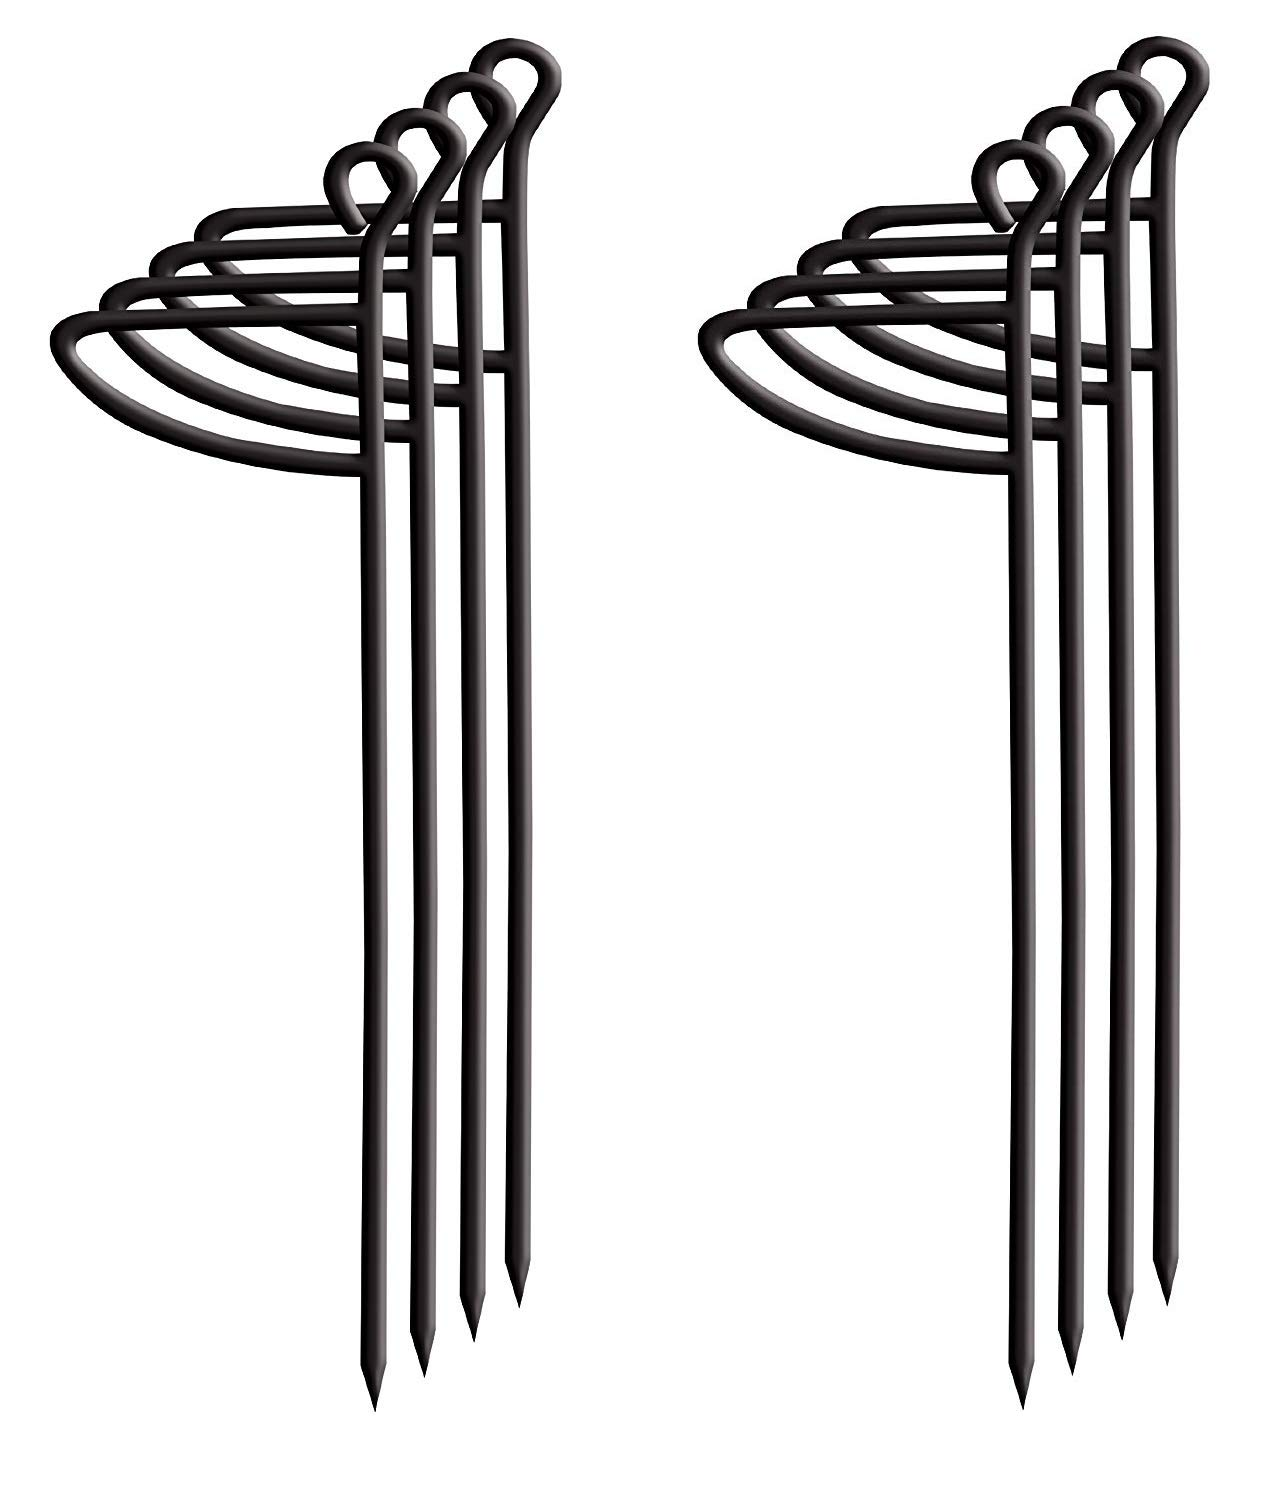 Primos Primos Double Bull Blind Stakes (4-Pack) (Вundlе оf Тwо)